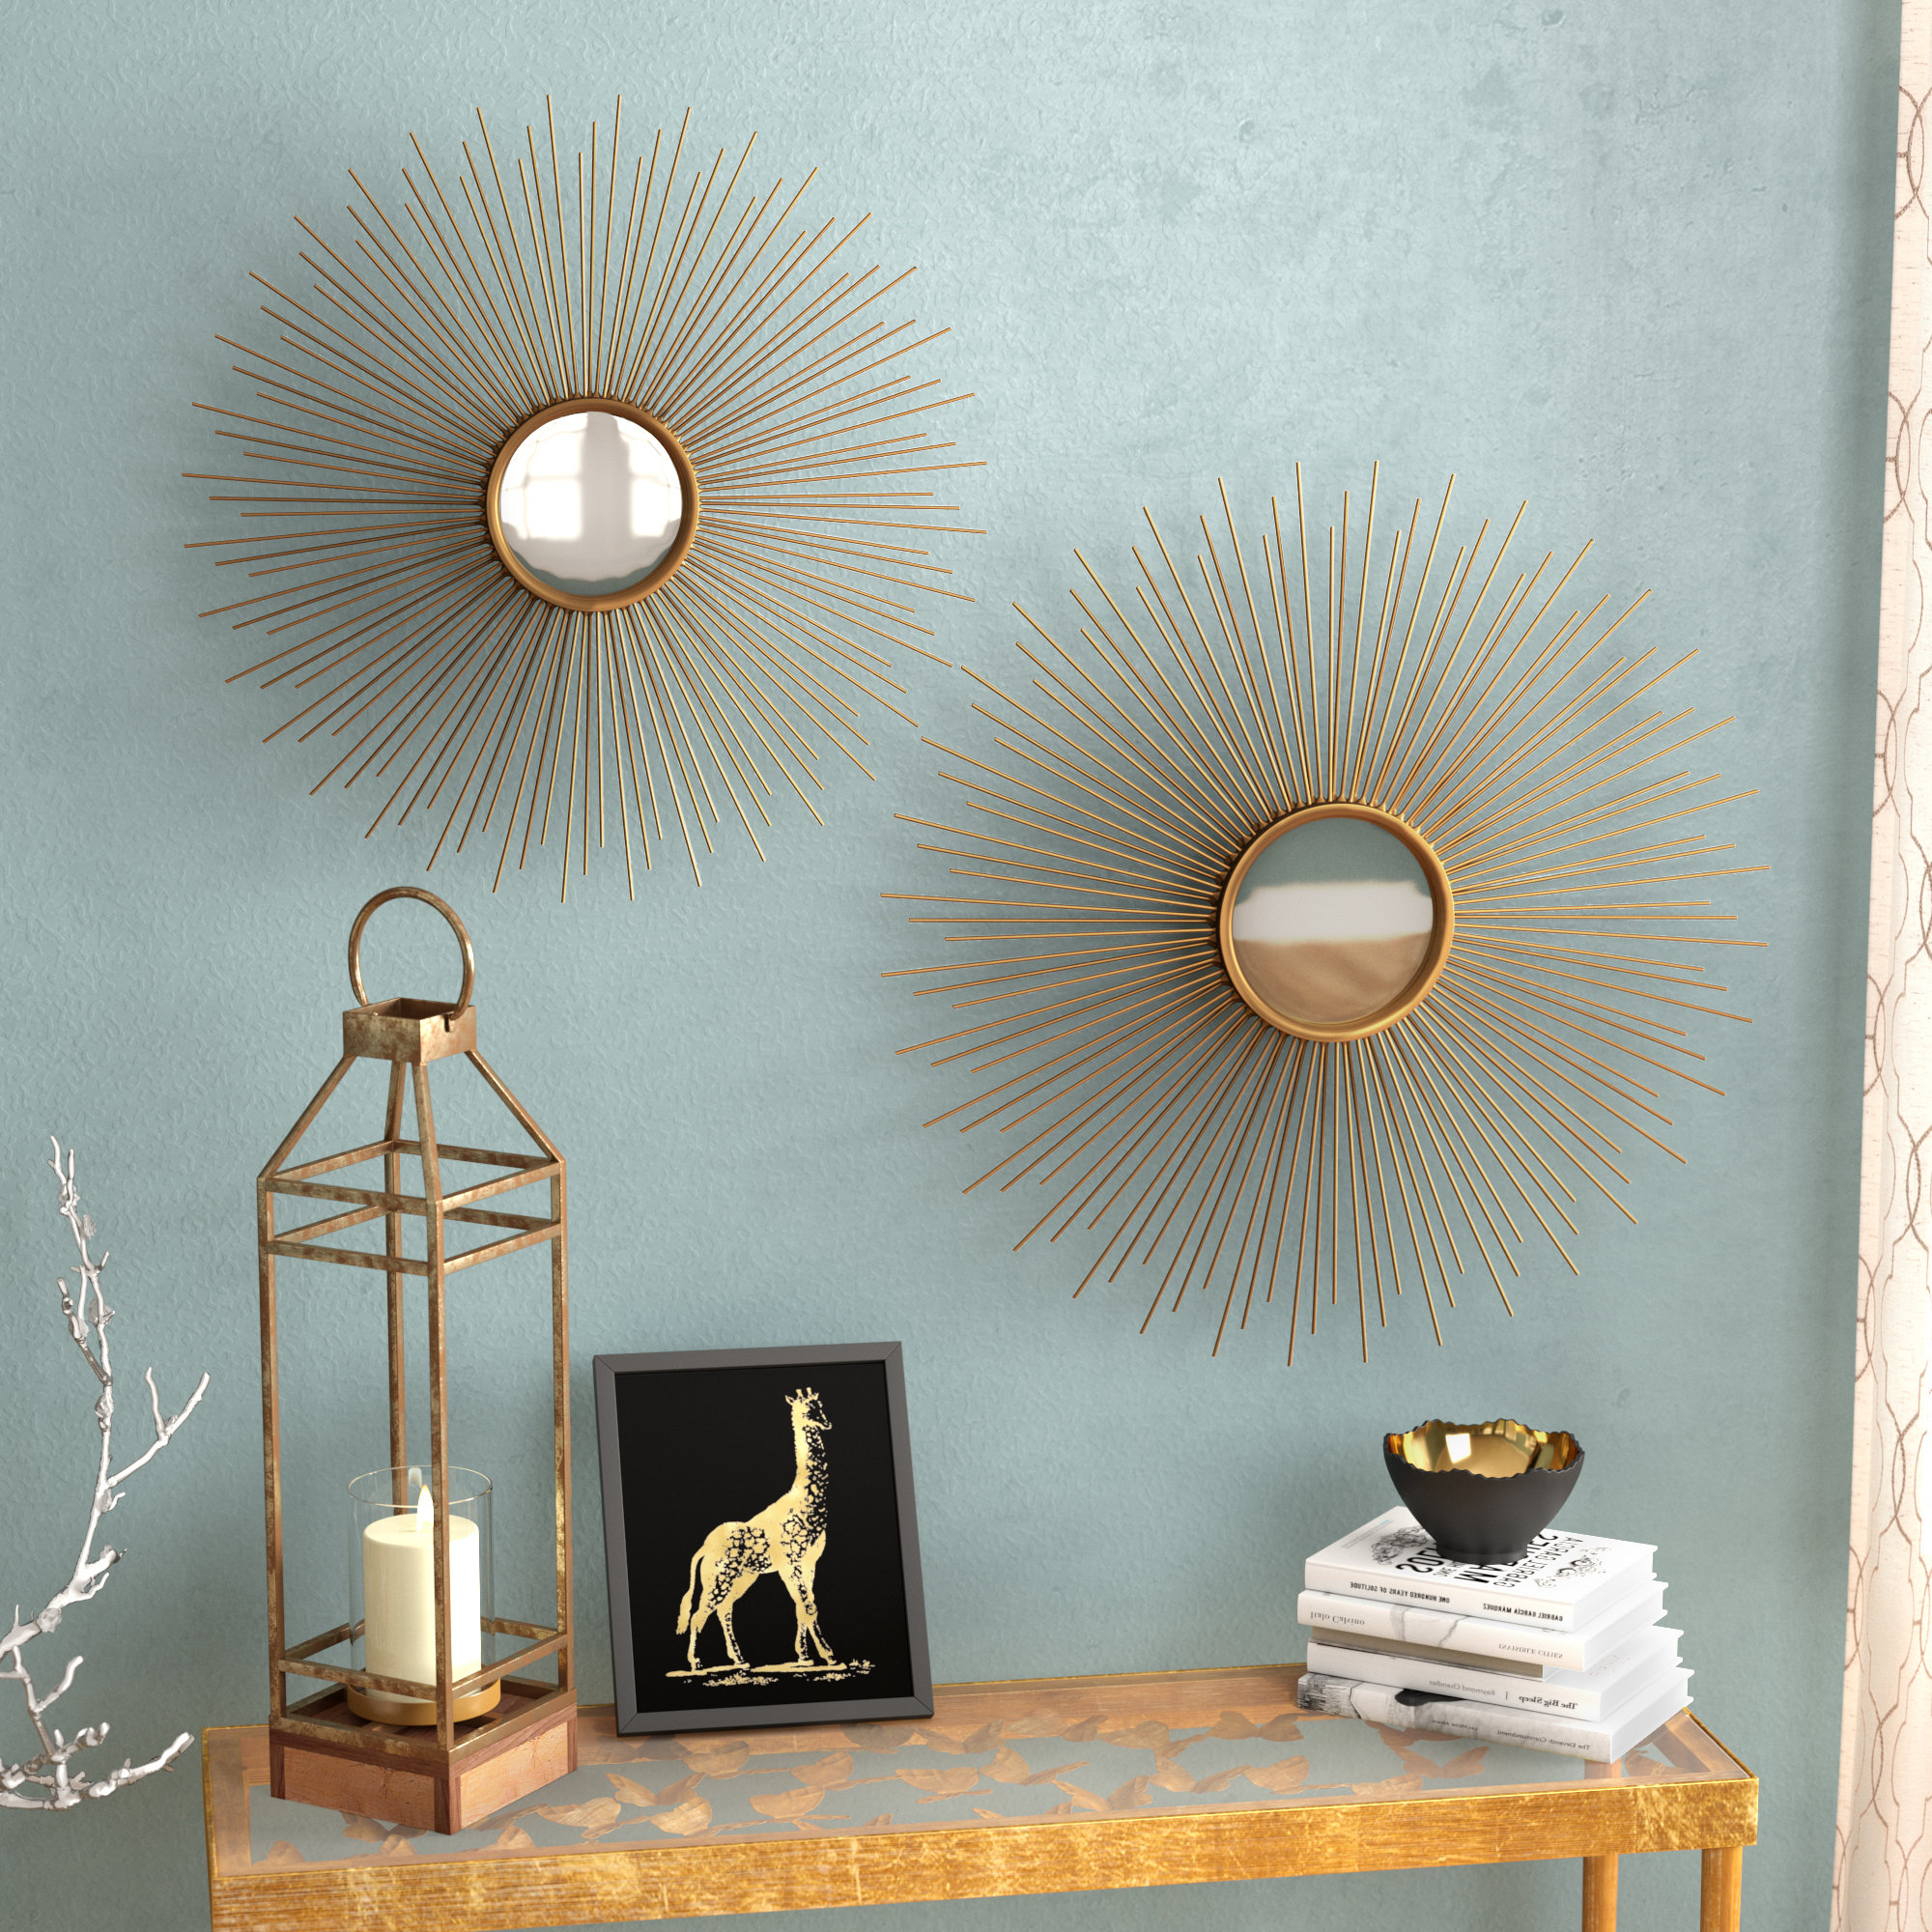 Starburst Wall Decor By Willa Arlo Interiors Within Widely Used Willa Arlo Interiors Melora Sunburst Round Metal Wall Mirror (View 14 of 20)